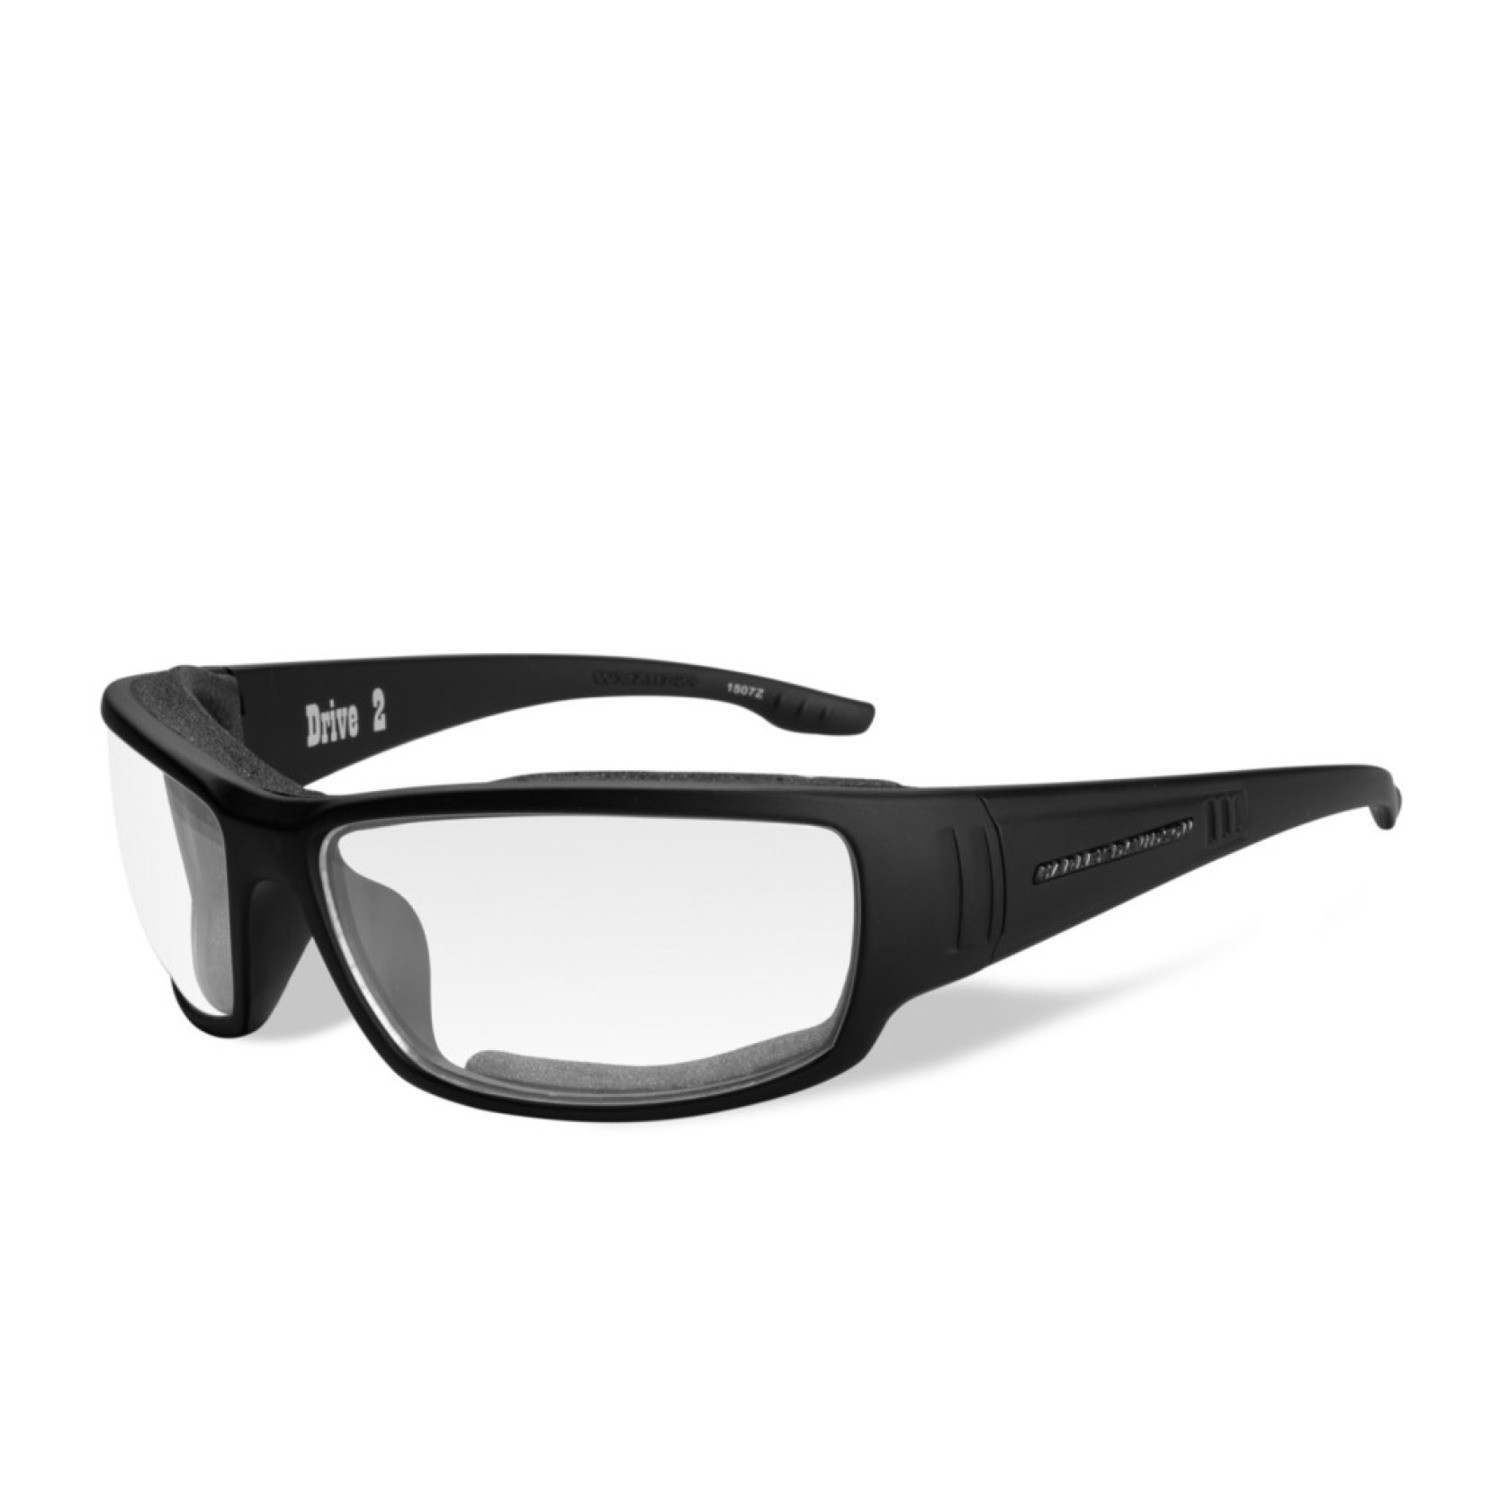 Wiley X HD Drive 2 Clear Lenses / Matte Black Frame Biker Glasses